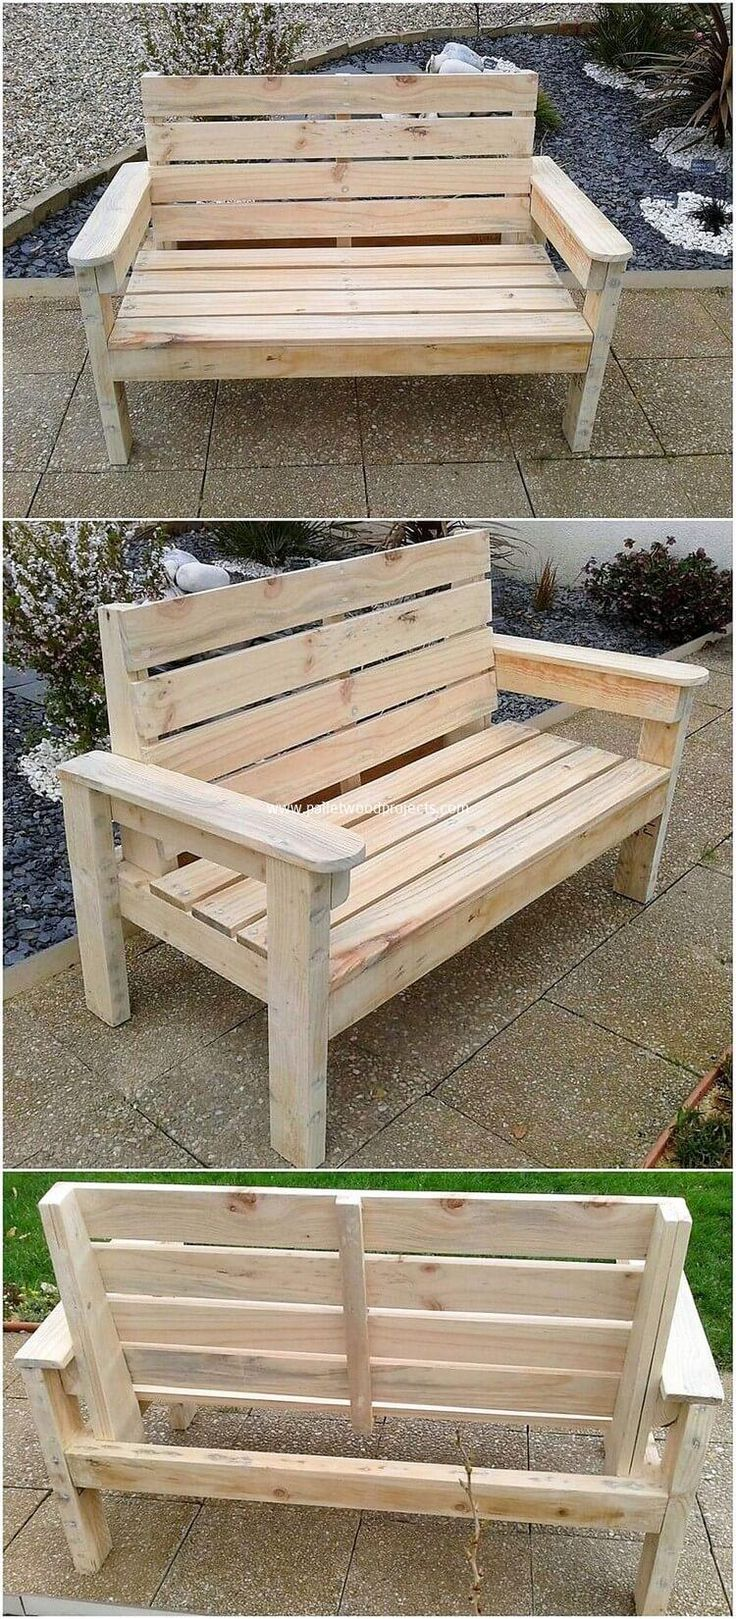 Simple and Nice Wood Pallet Recycling Ideas